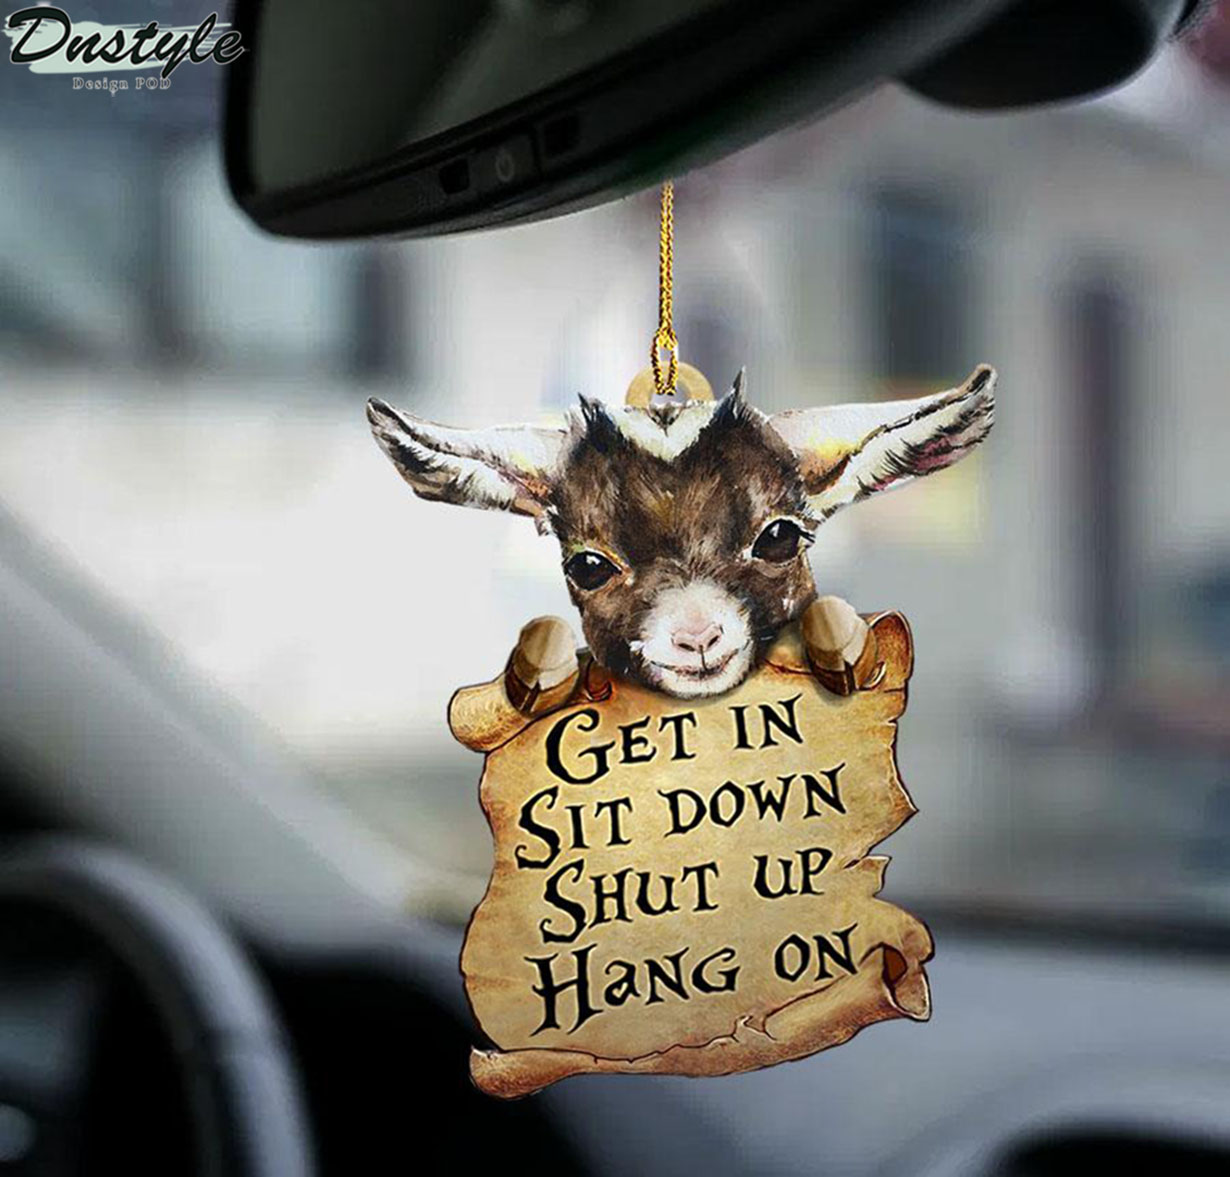 Goat get in sit down shut up hang on ornament 2